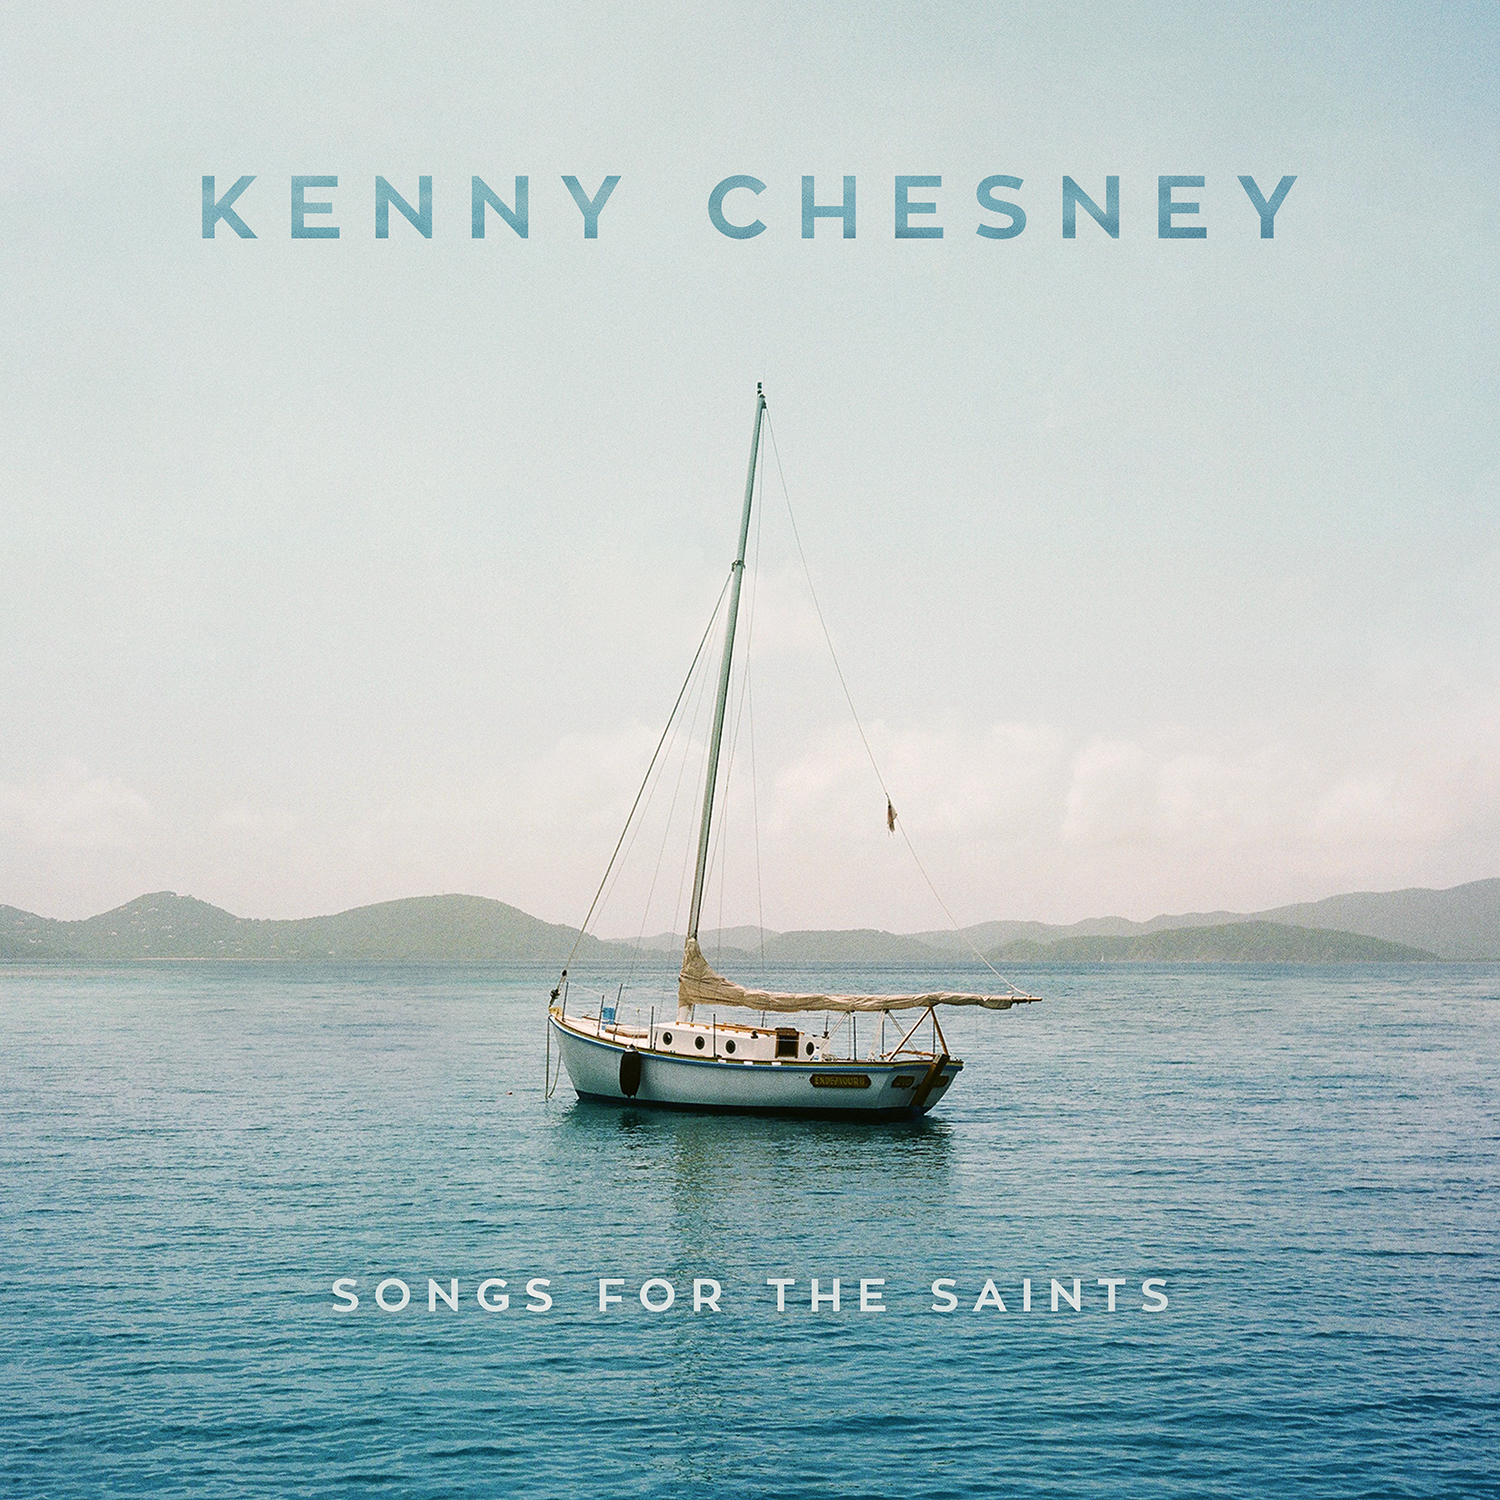 Kenny Chesney LIVE SiriusXM Town Hall Friday for SONGS FOR THE SAINTS